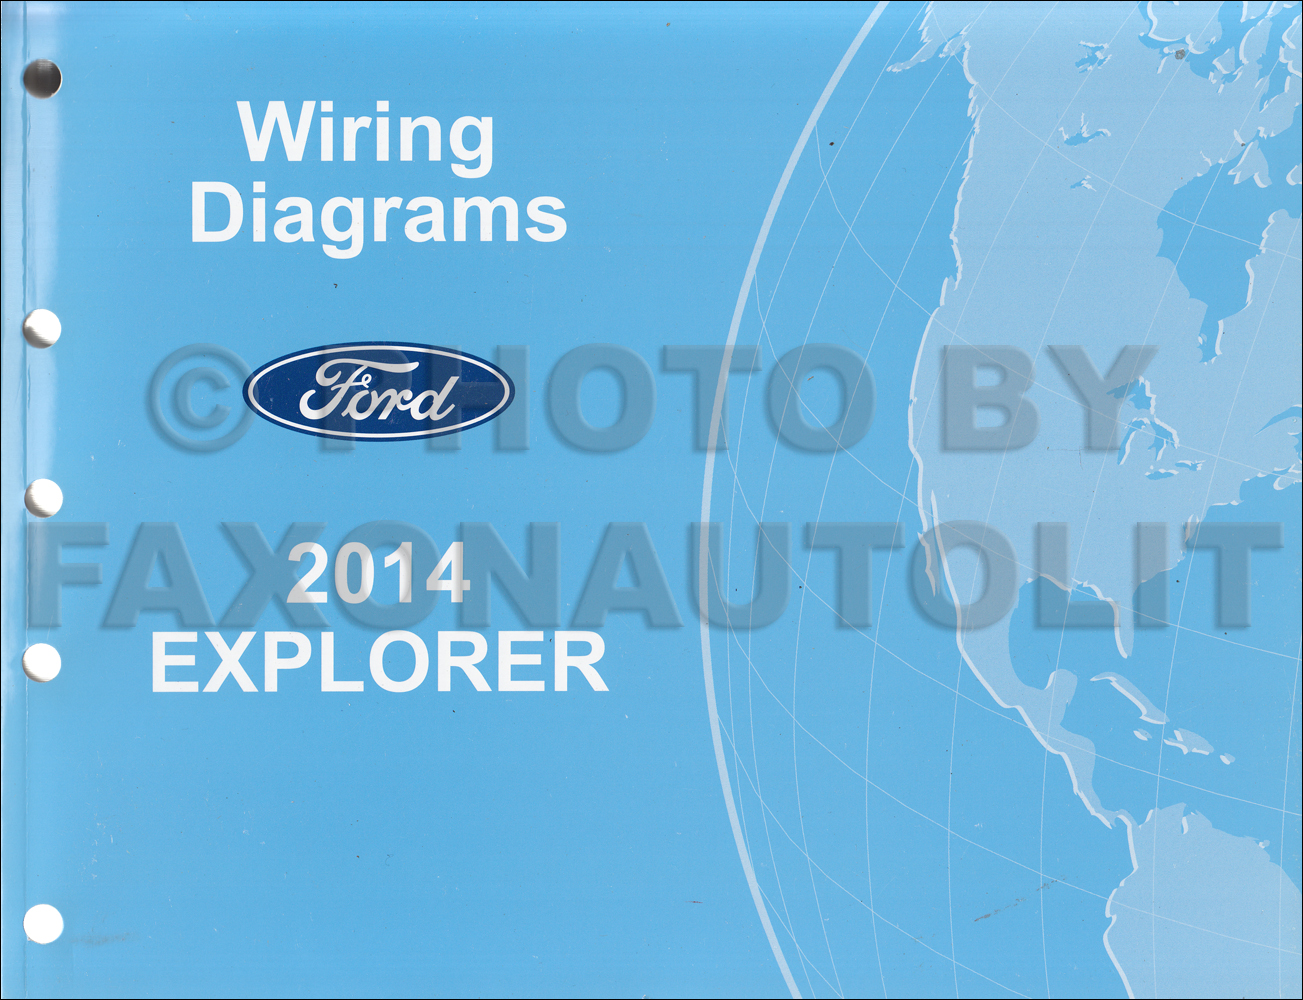 2014FordExplorerOWD  Ford Wiring Diagram on 1950 ford crew cab, 1950 ford ford, 1950 ford steering, 1950 ford forum, 1950 ford interior, 1950 ford 3 speed transmission, 1950 ford clock, 1950 ford drive shaft, 1950 ford clutch, 1950 ford wiring harness, 1950 ford lightning, 1950 ford parts, 1950 ford owners manual, 1950 ford heater, 1950 ford door, 1950 ford seats, 1950 ford generator, 1950 ford air conditioning, 1950 ford models, 1950 ford brakes,